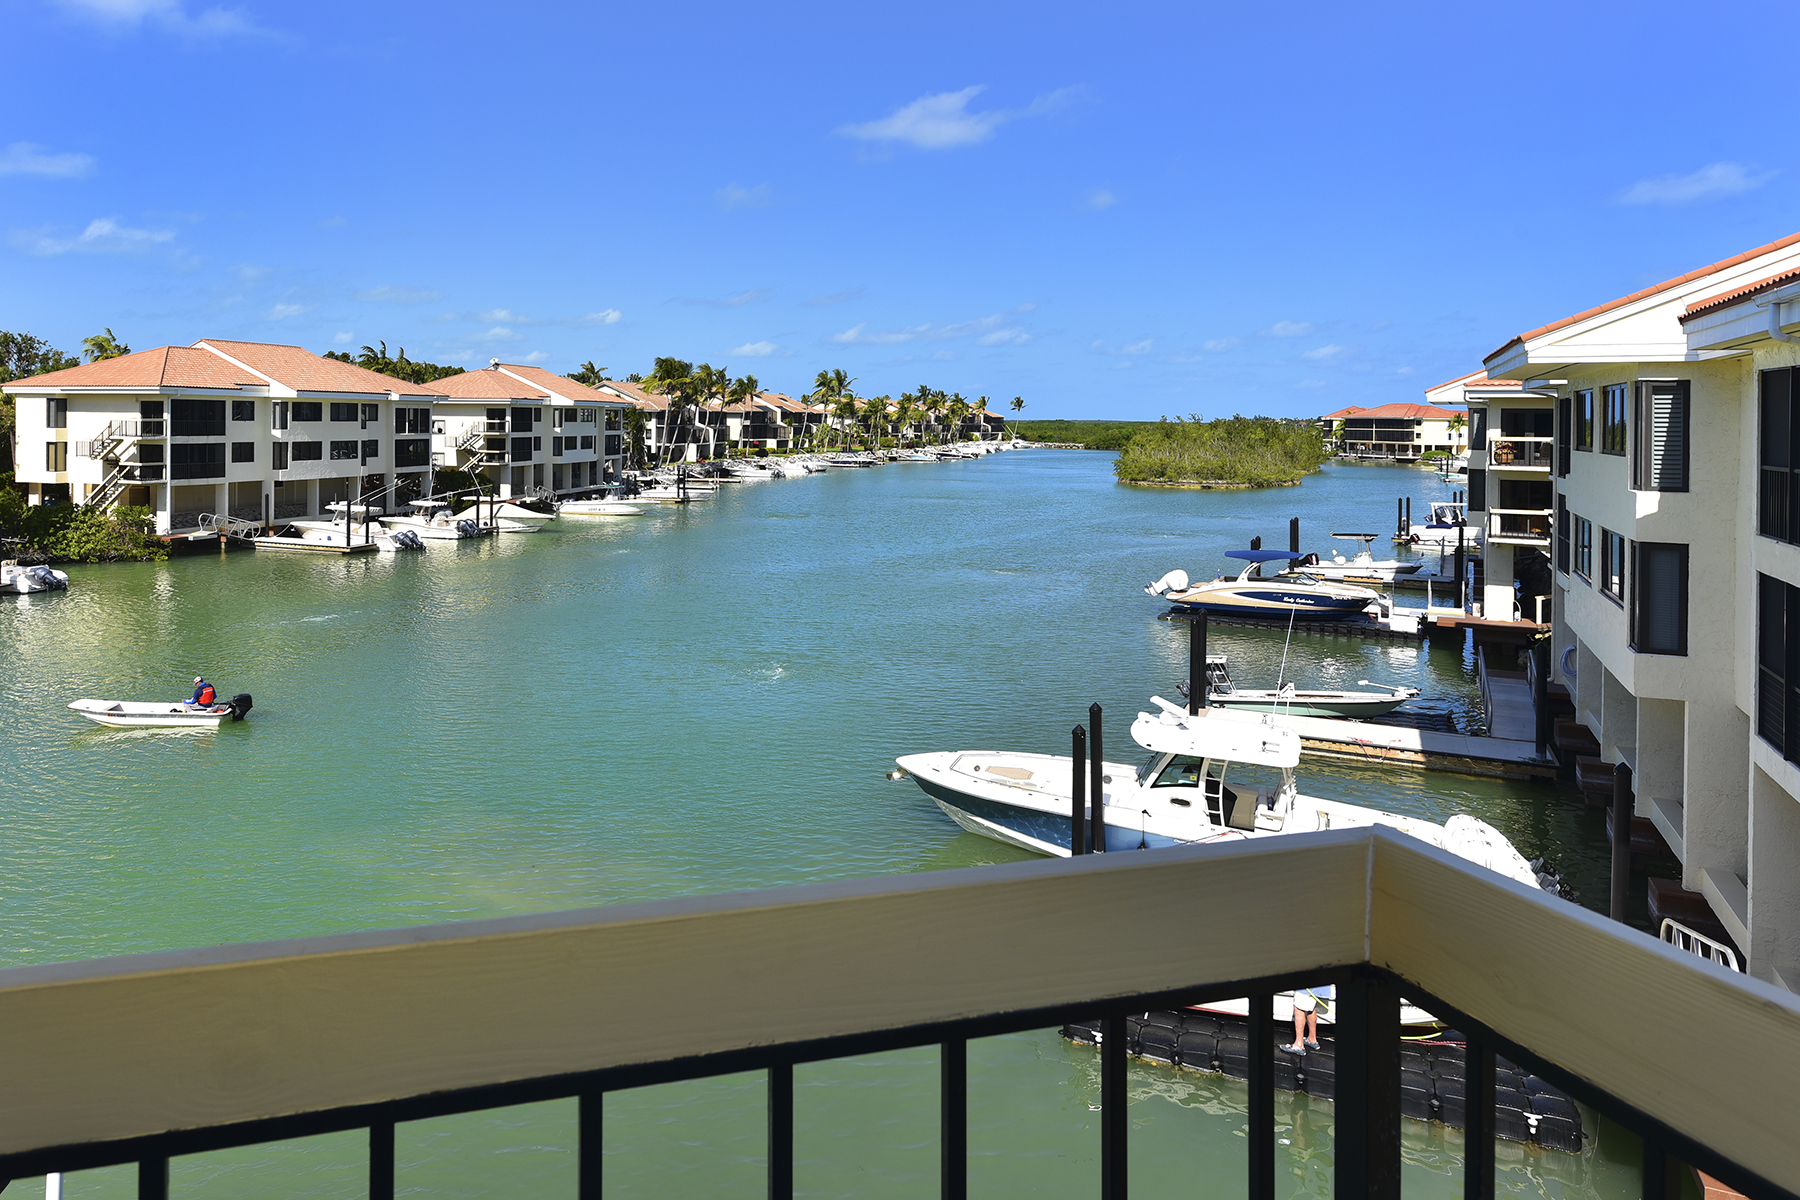 Кондоминиум для того Продажа на Fisherman's Cove Condominium at Ocean Reef 21 Fisherman's Cove, Unit B Key Largo, Флорида 33037 Соединенные Штаты